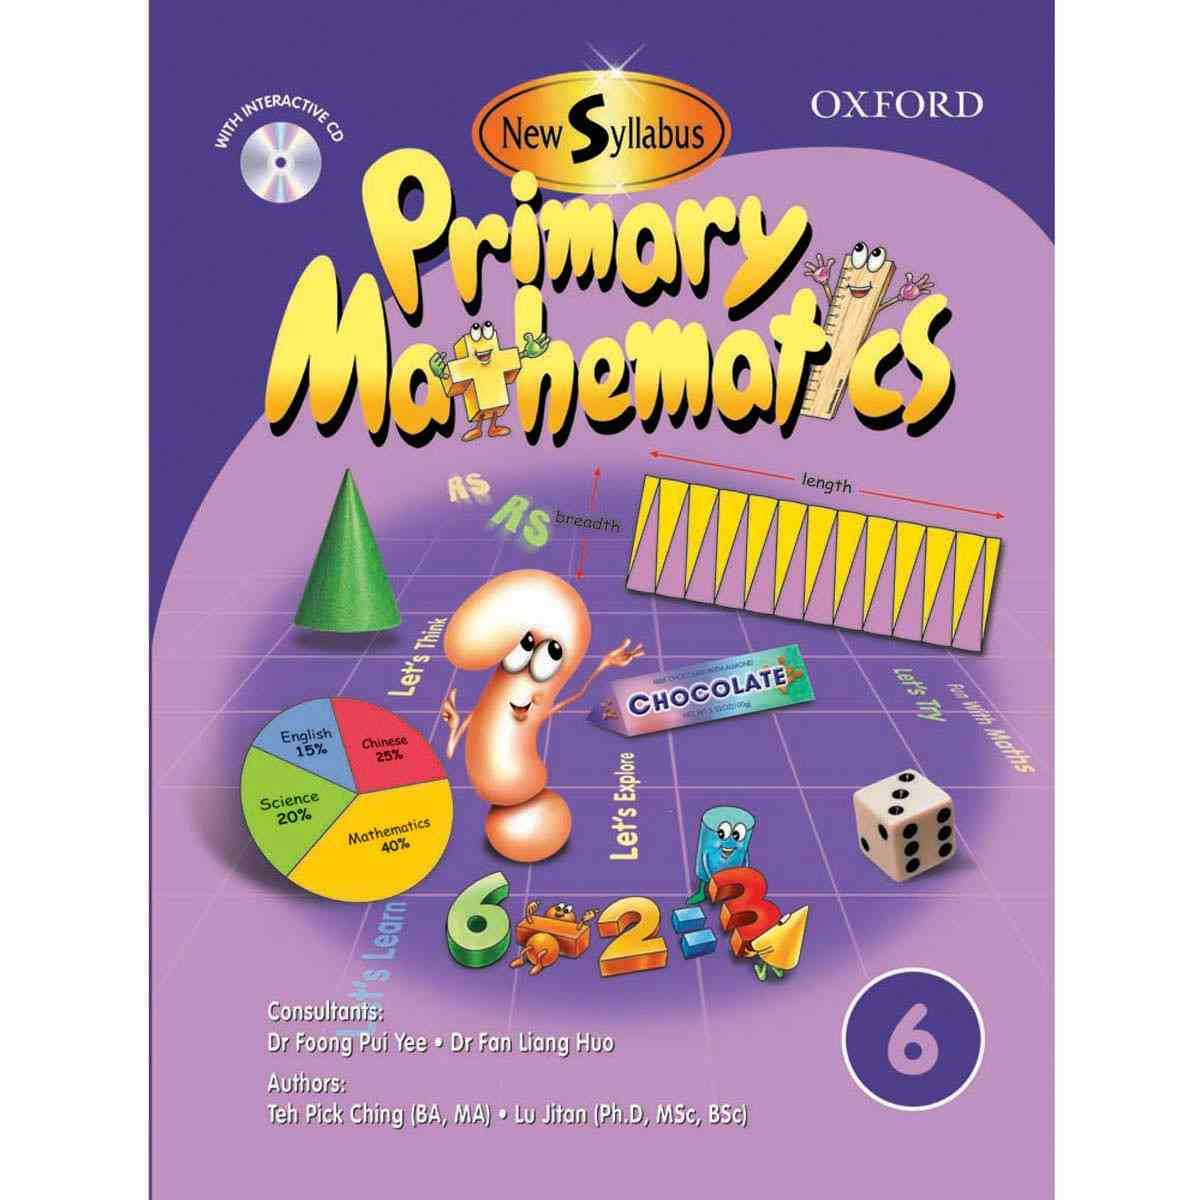 Oxford Books Syllabus Primary Mathematics Book 6 By Lu Jitan